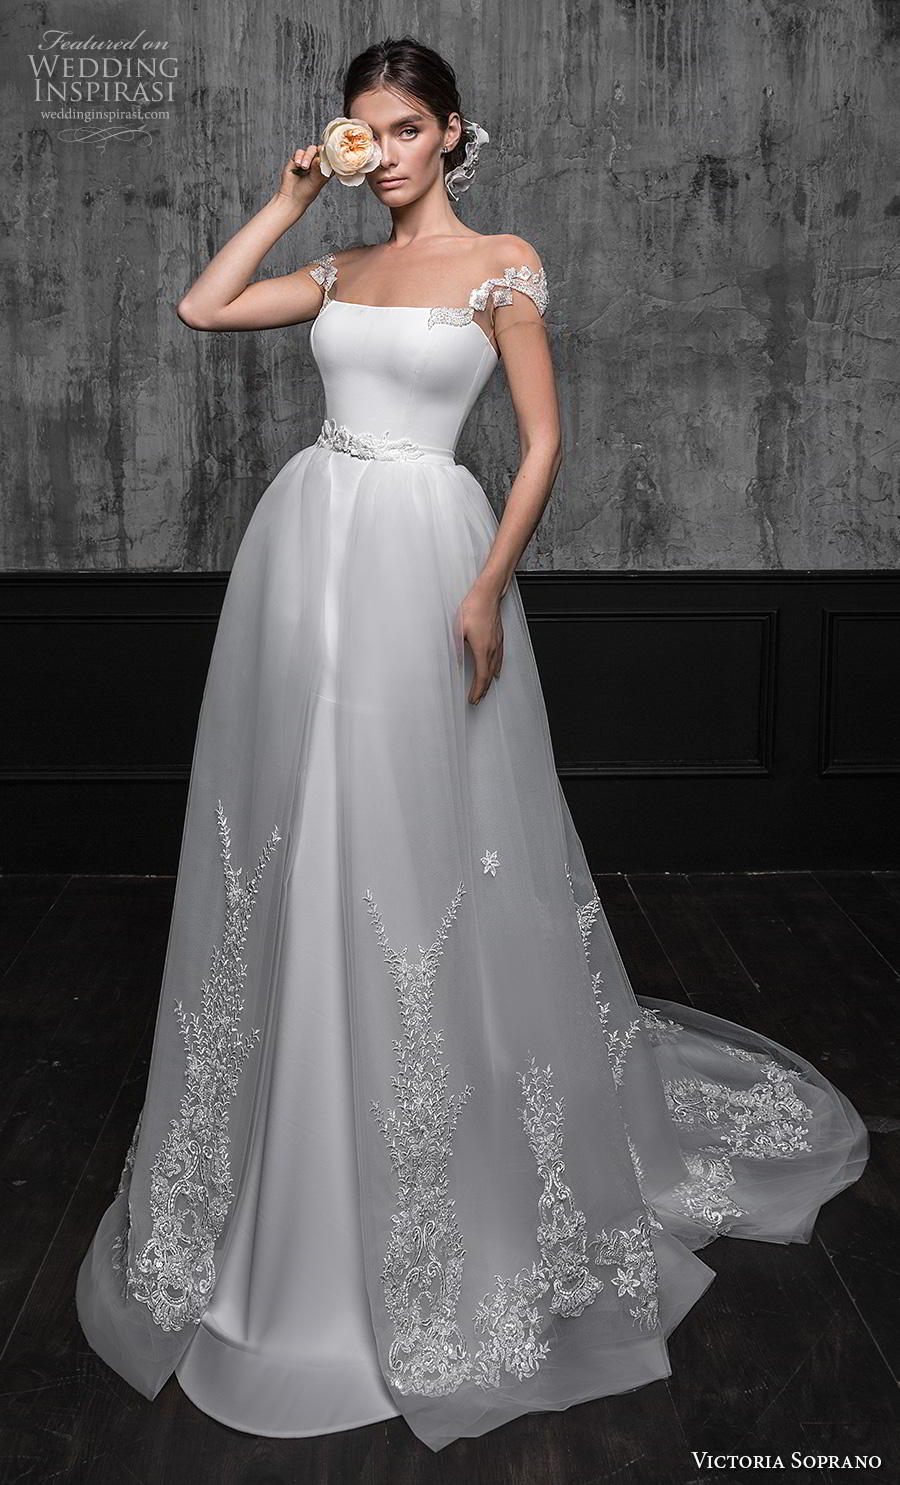 victoria soprano 2020 bridal cap sleeves illusion bateau straight across neckline simple clean fit and flare wedding dress a line overskirt corset back short train (13) mv